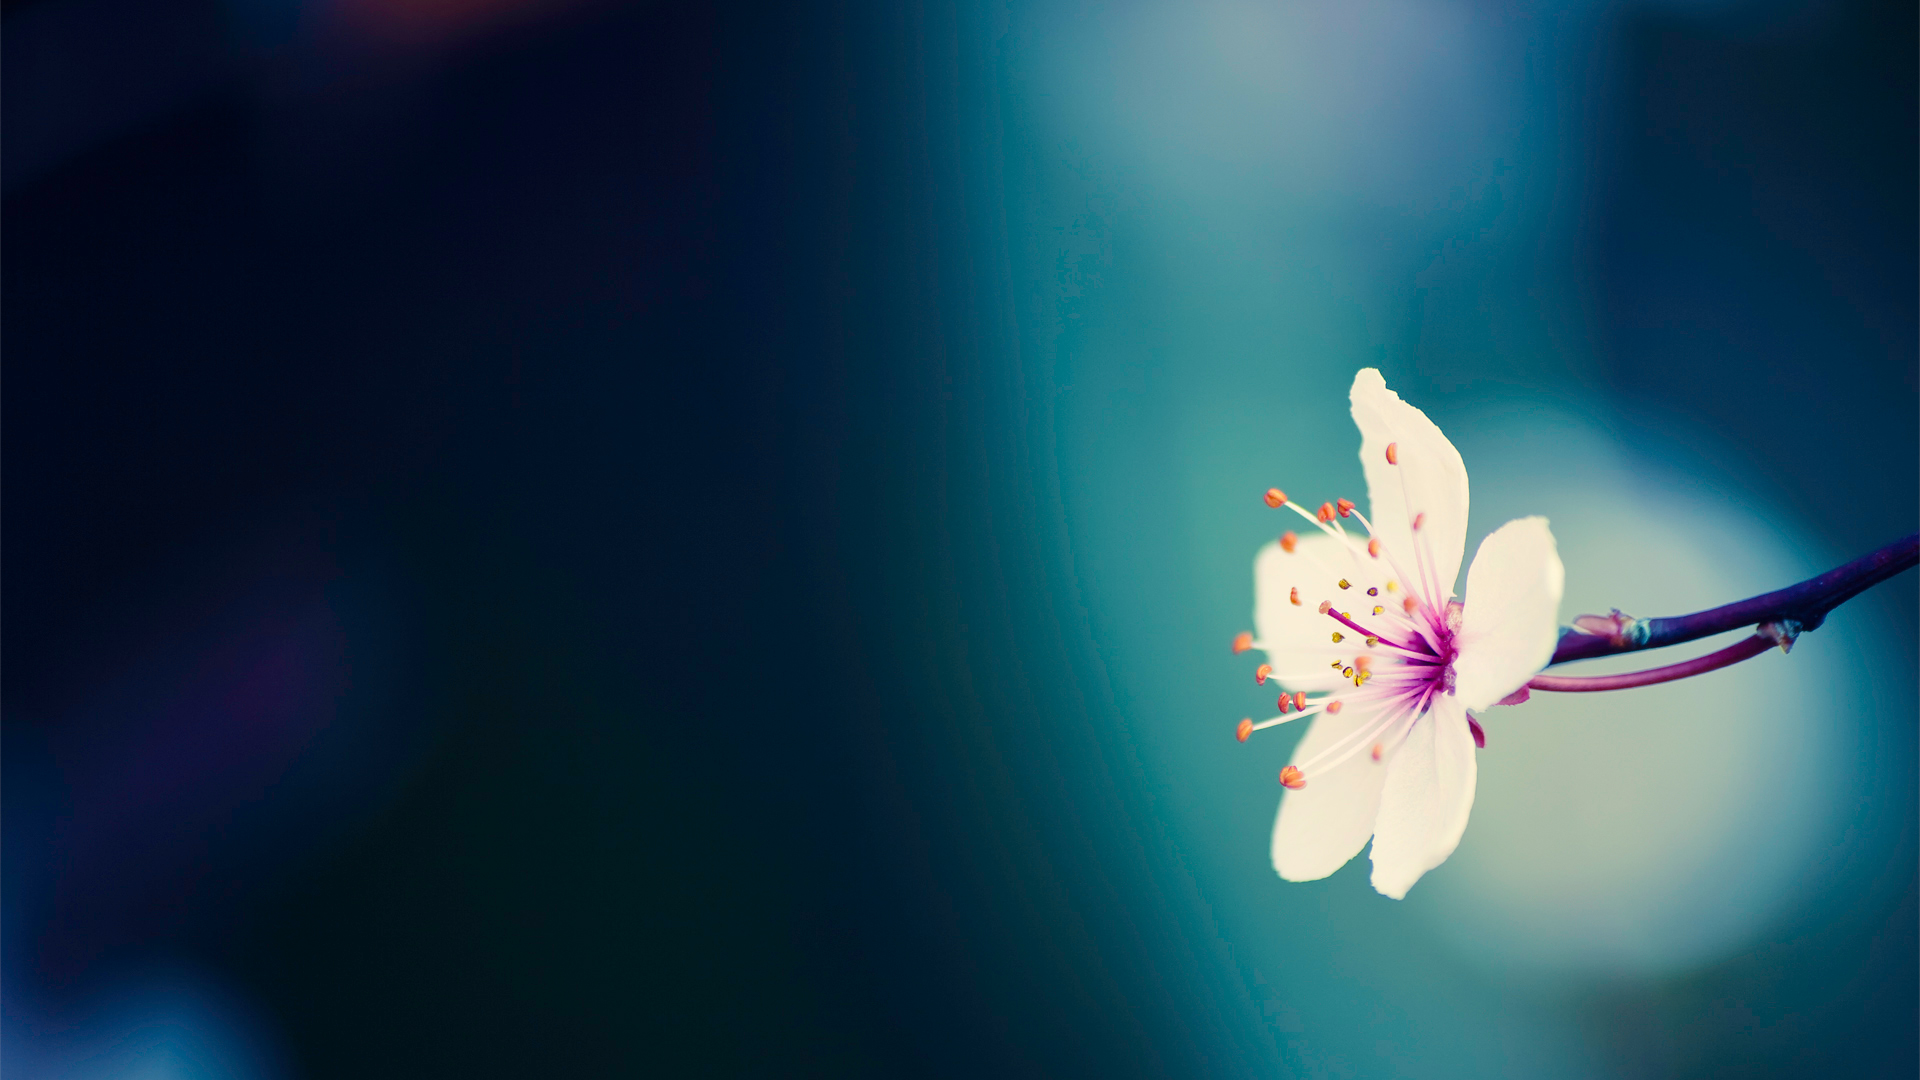 Floral Wallpaper With Black Background 38 High Resolution Wallpaper